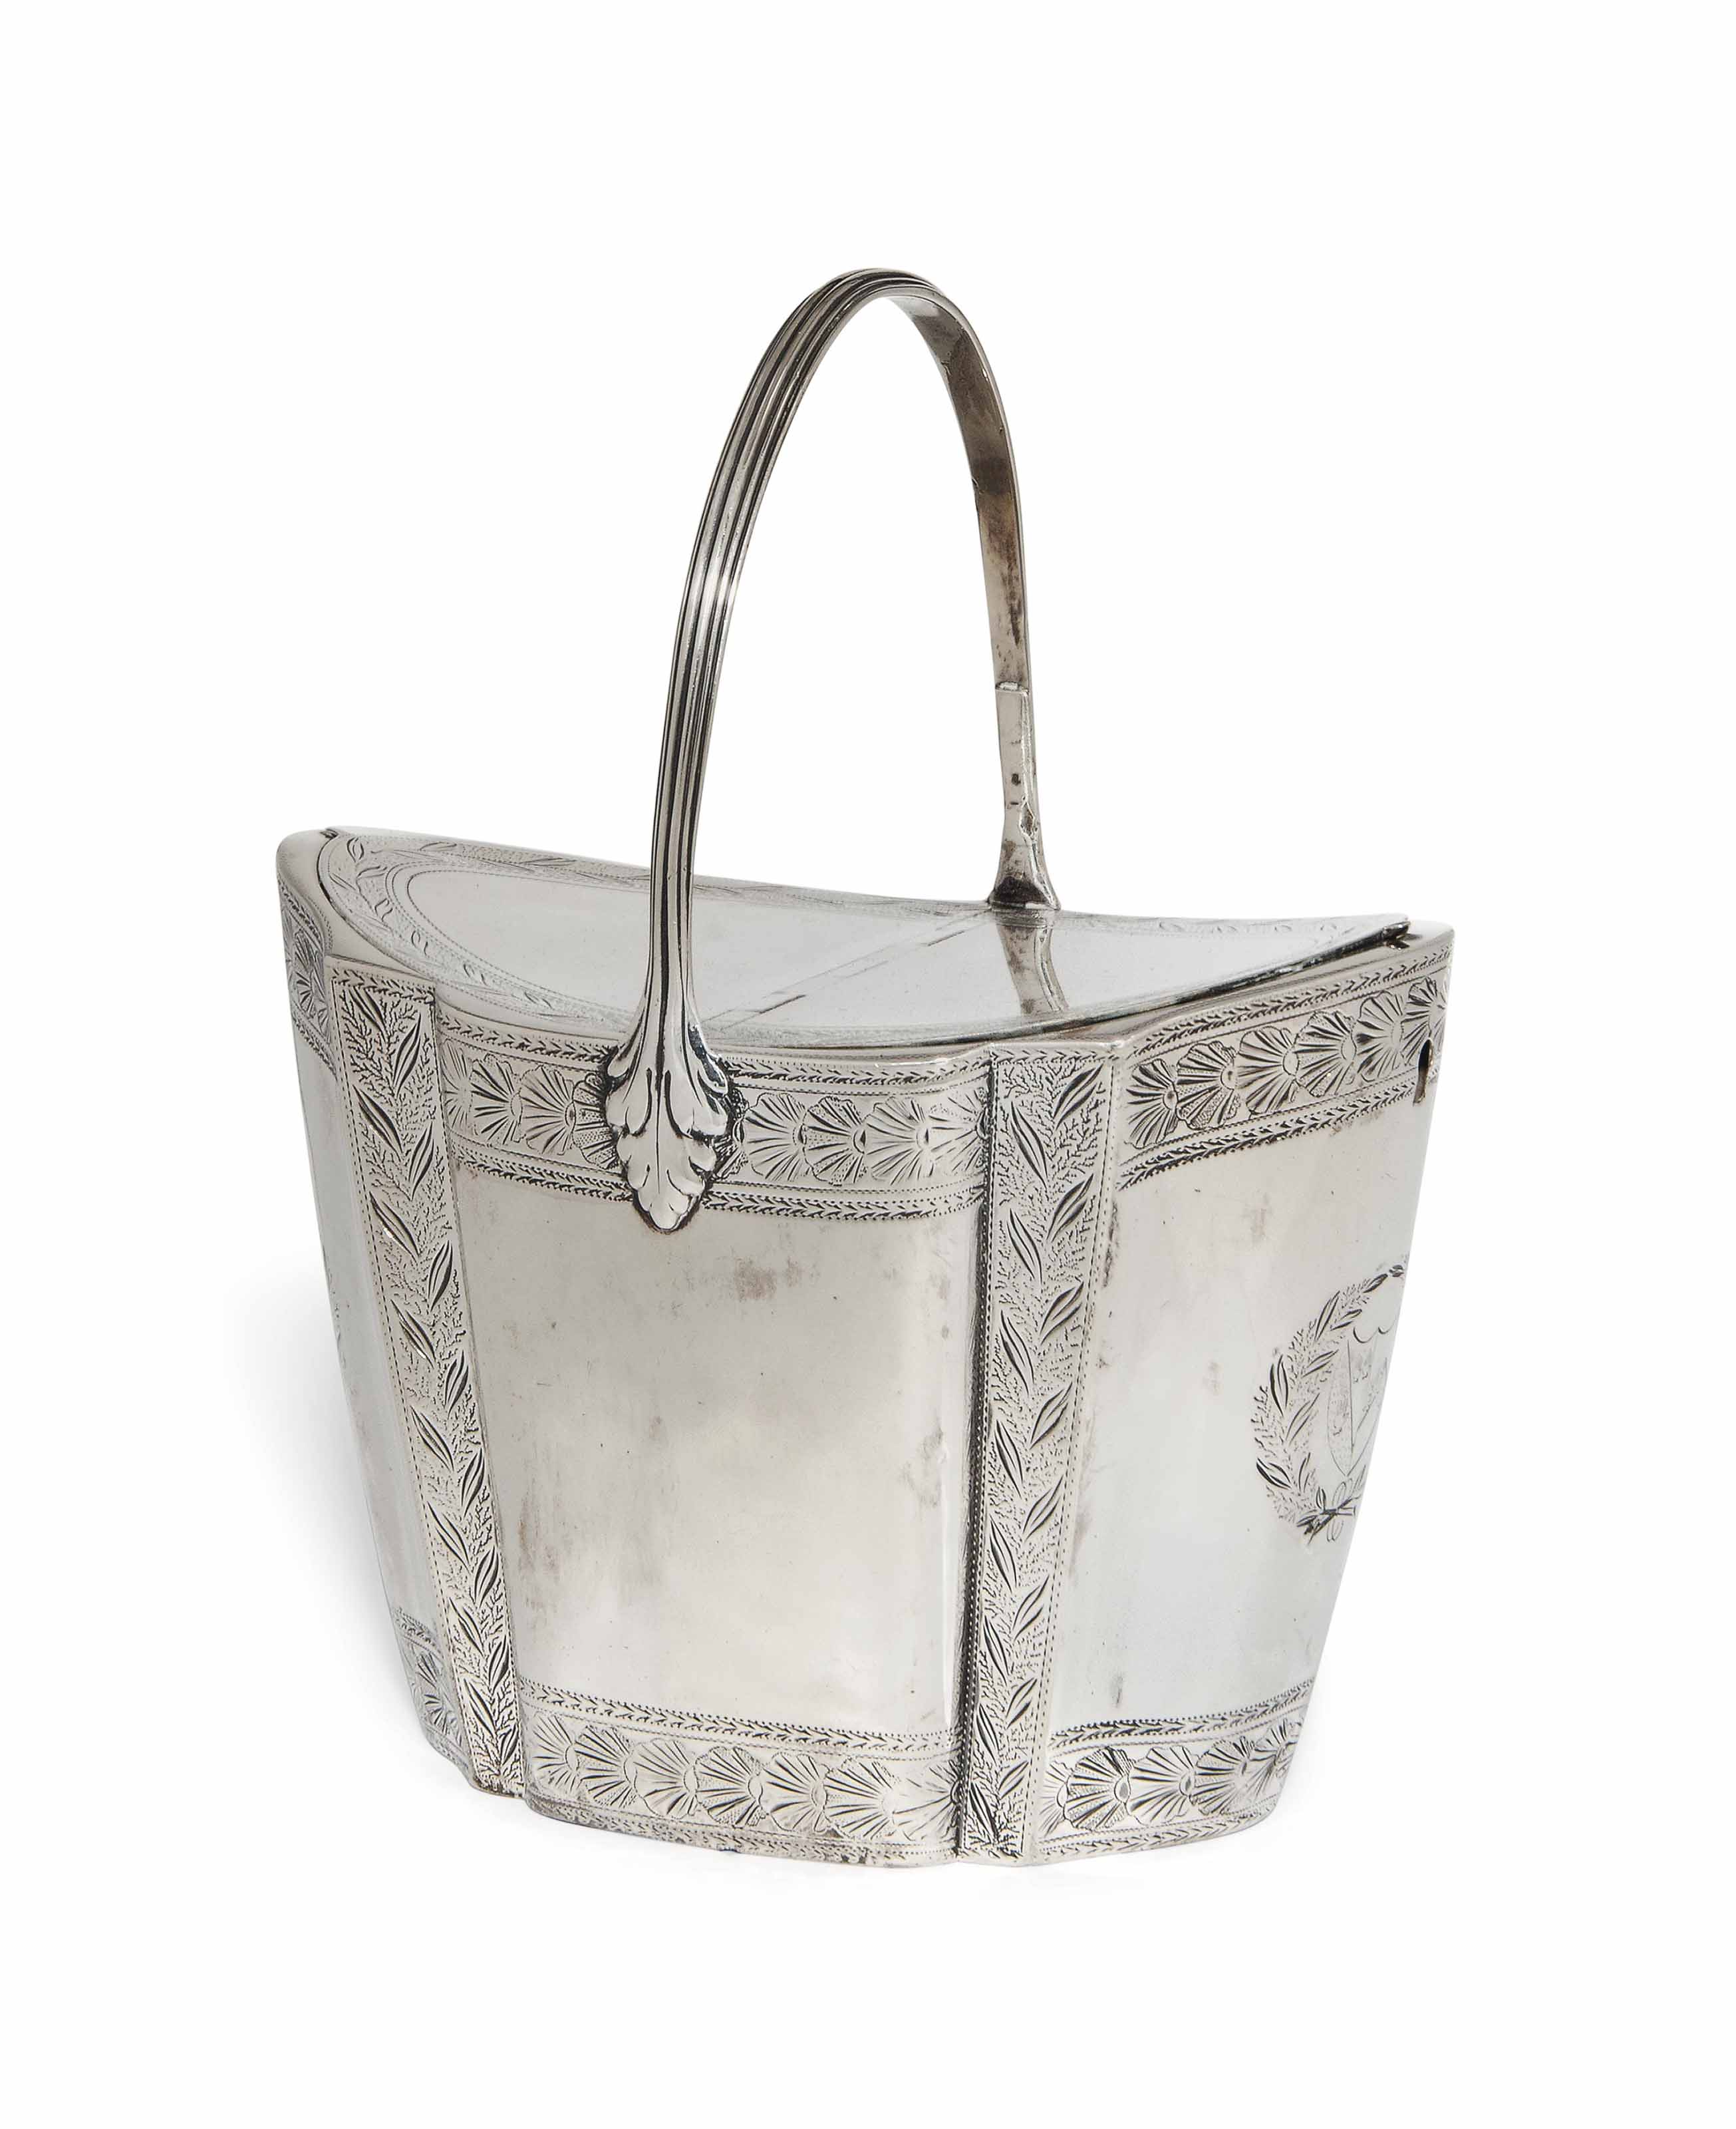 A GEORGE III SILVER TWIN-COMPARTMENT TEA CADDY WITH CENTRAL FIXED REEDED HANDLE